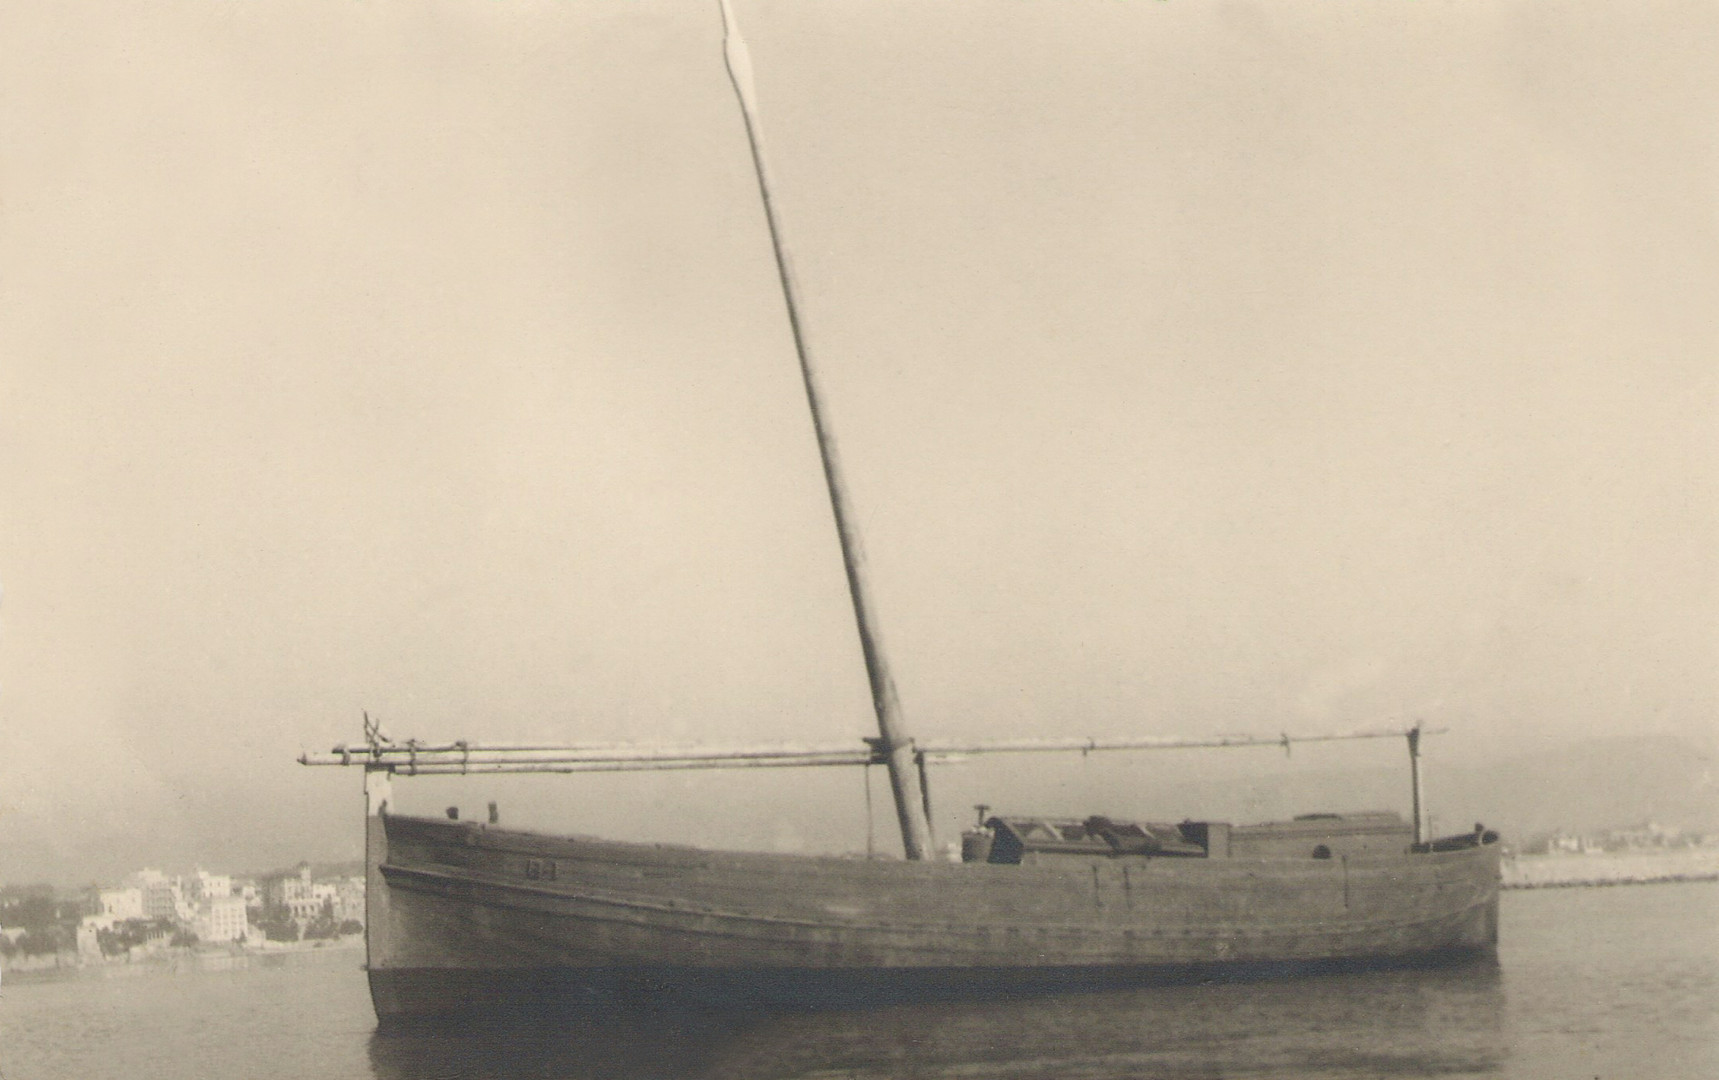 Coastguard llaüt, 1915. Courtesy of Jesús M. Medel Soteras.